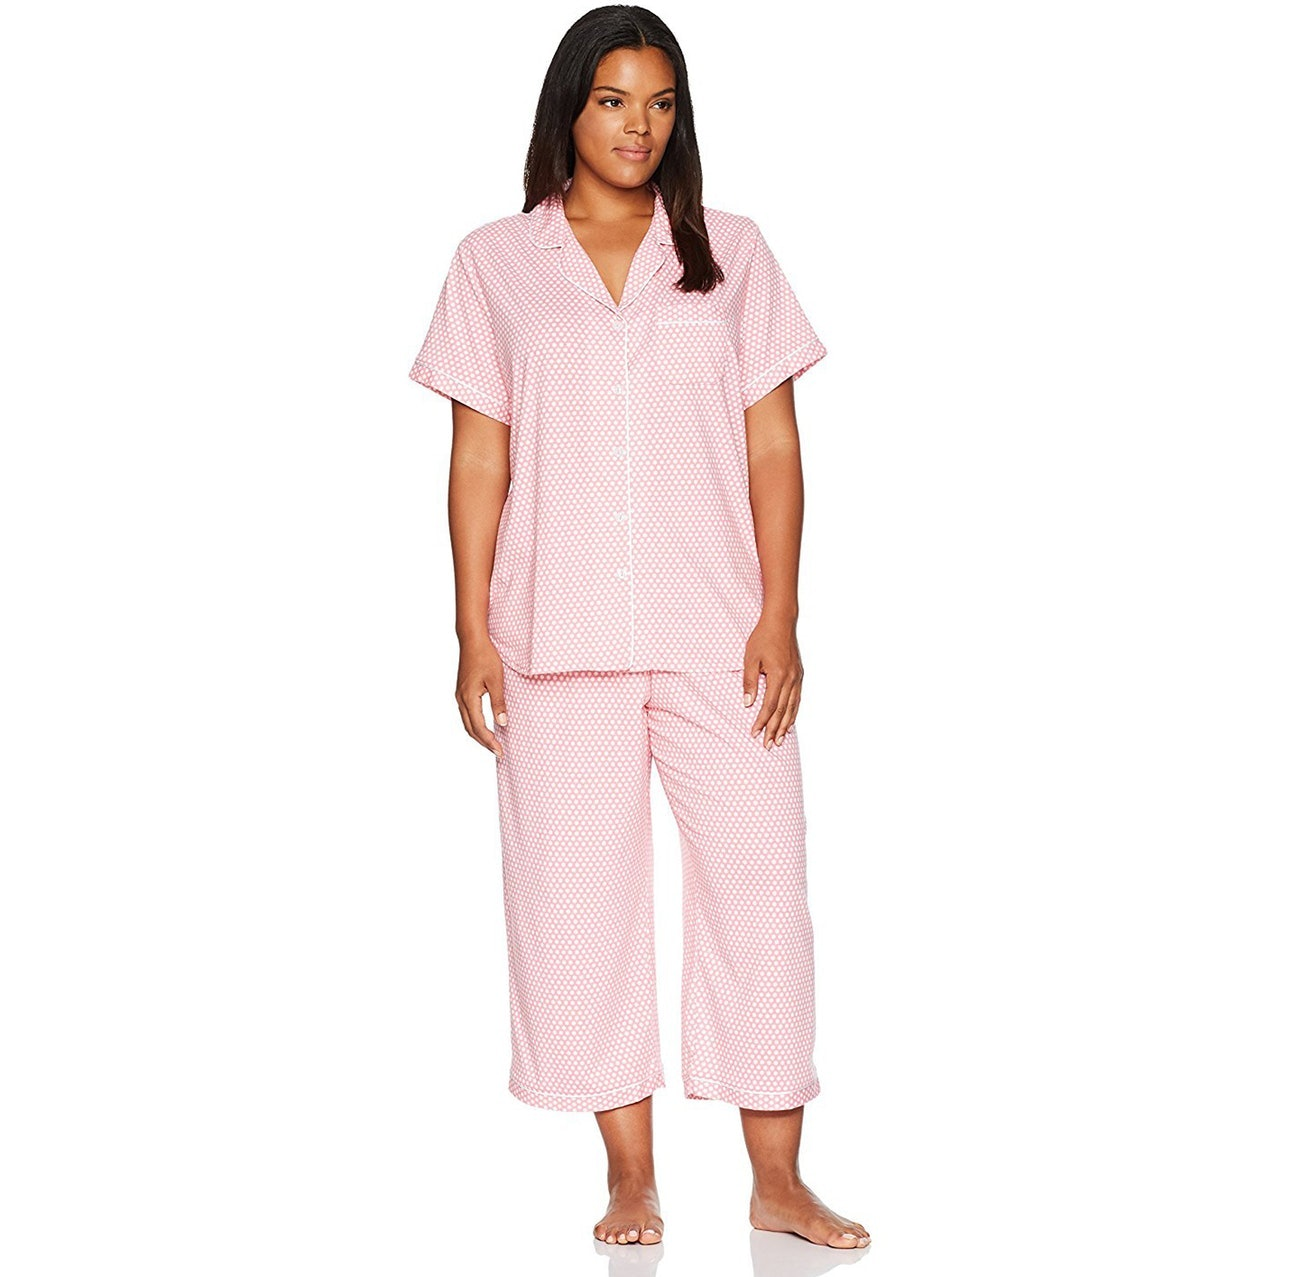 b6f79d3cc3 The 16 Best Pajamas To Keep Sweaty Sleepers Cool